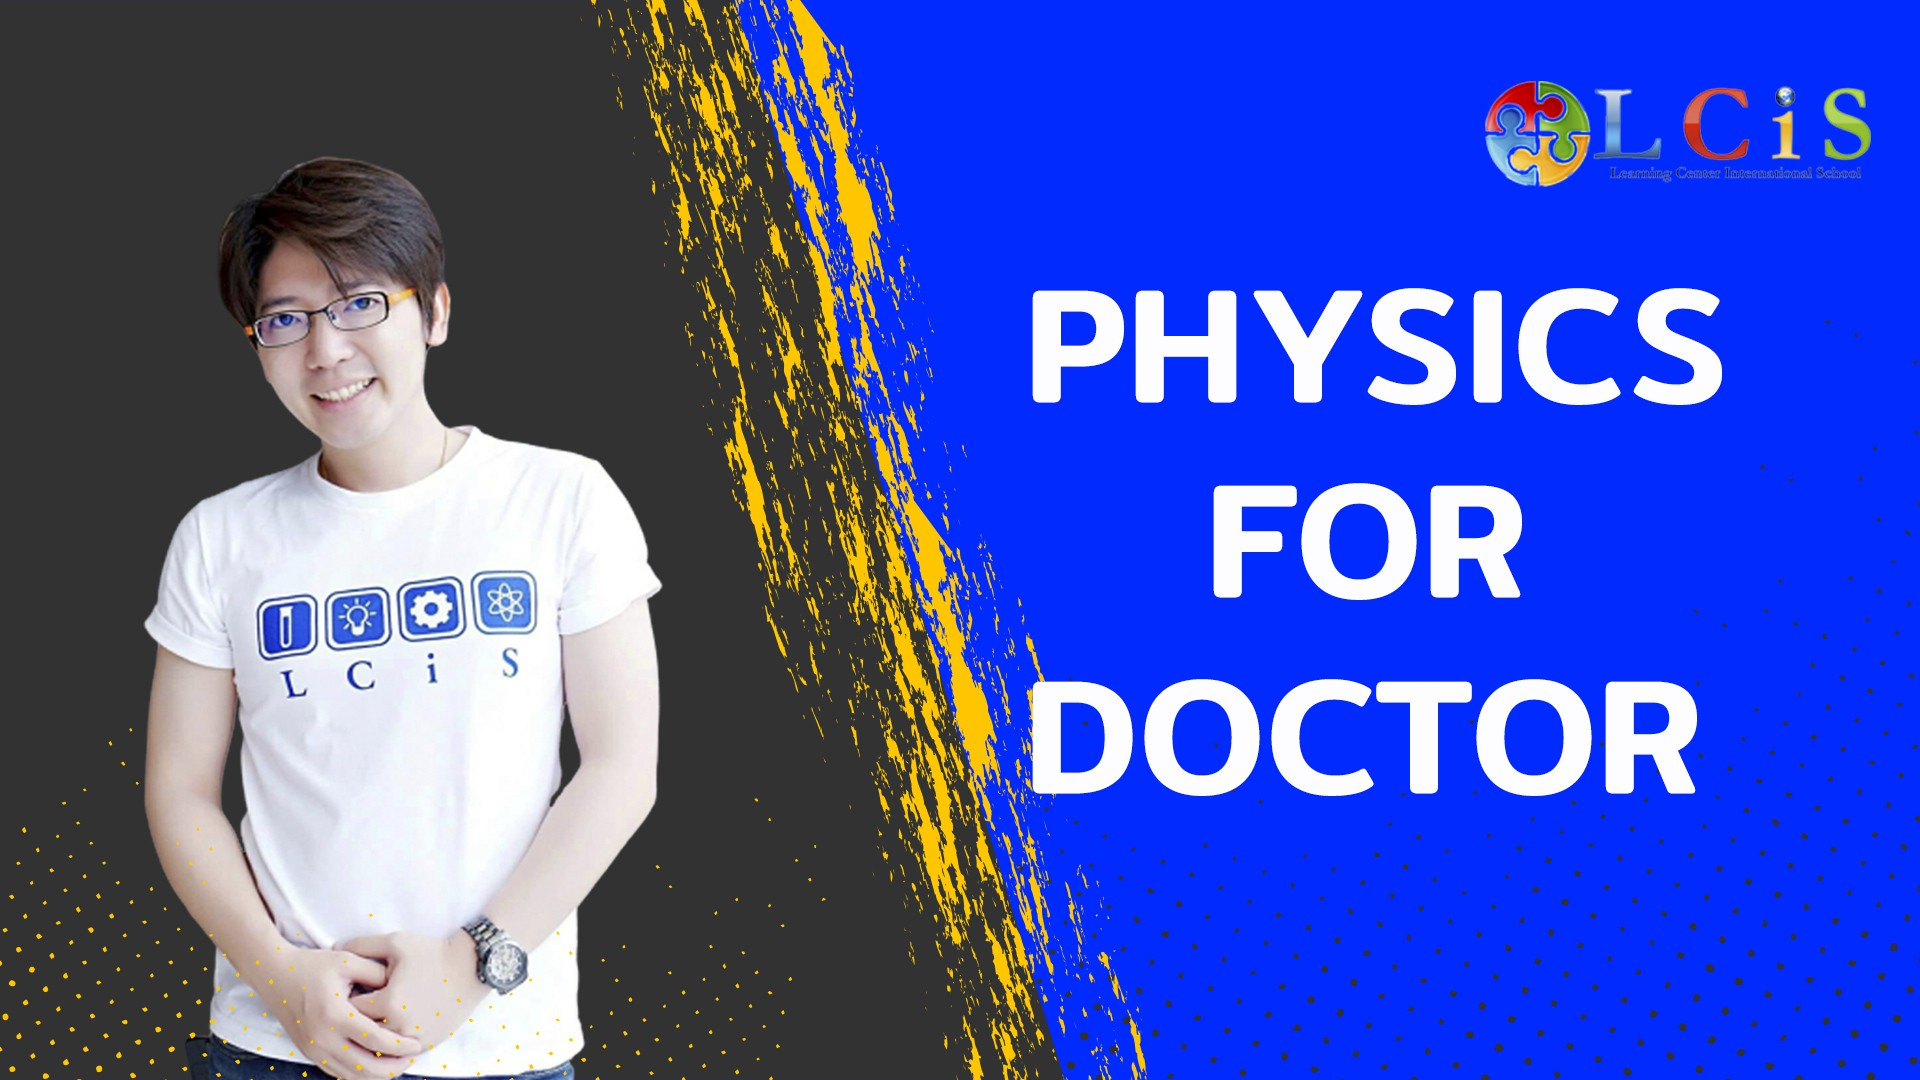 Physics for Doctor